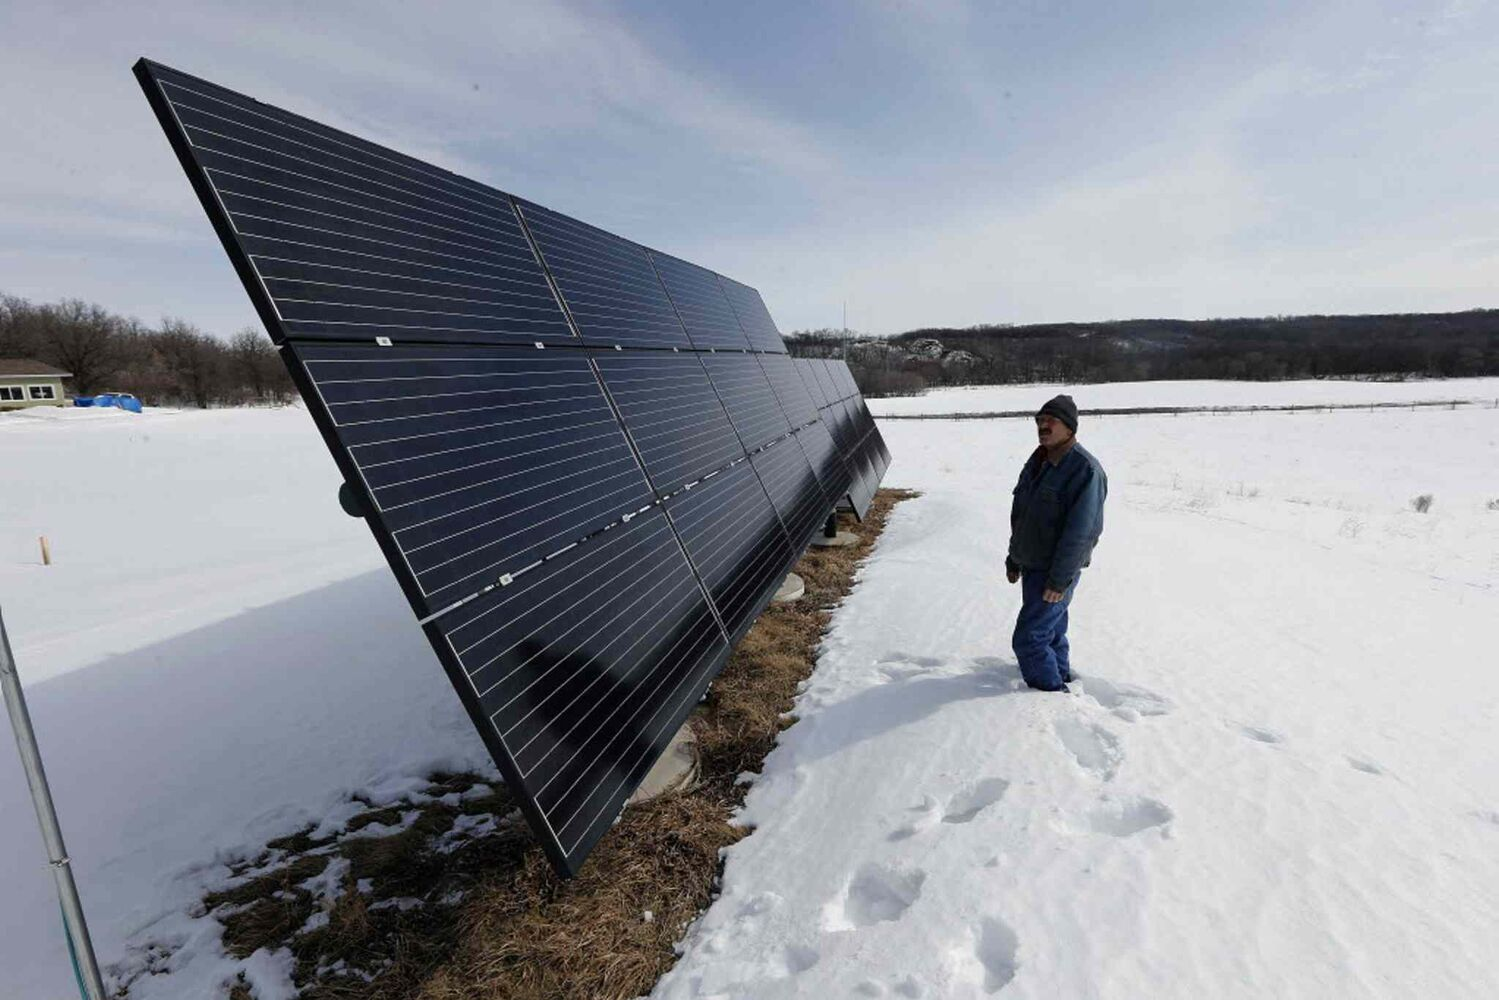 Solar panels that power the home. (KEN GIGLIOTTI / WINNIPEG FREE PRESS)